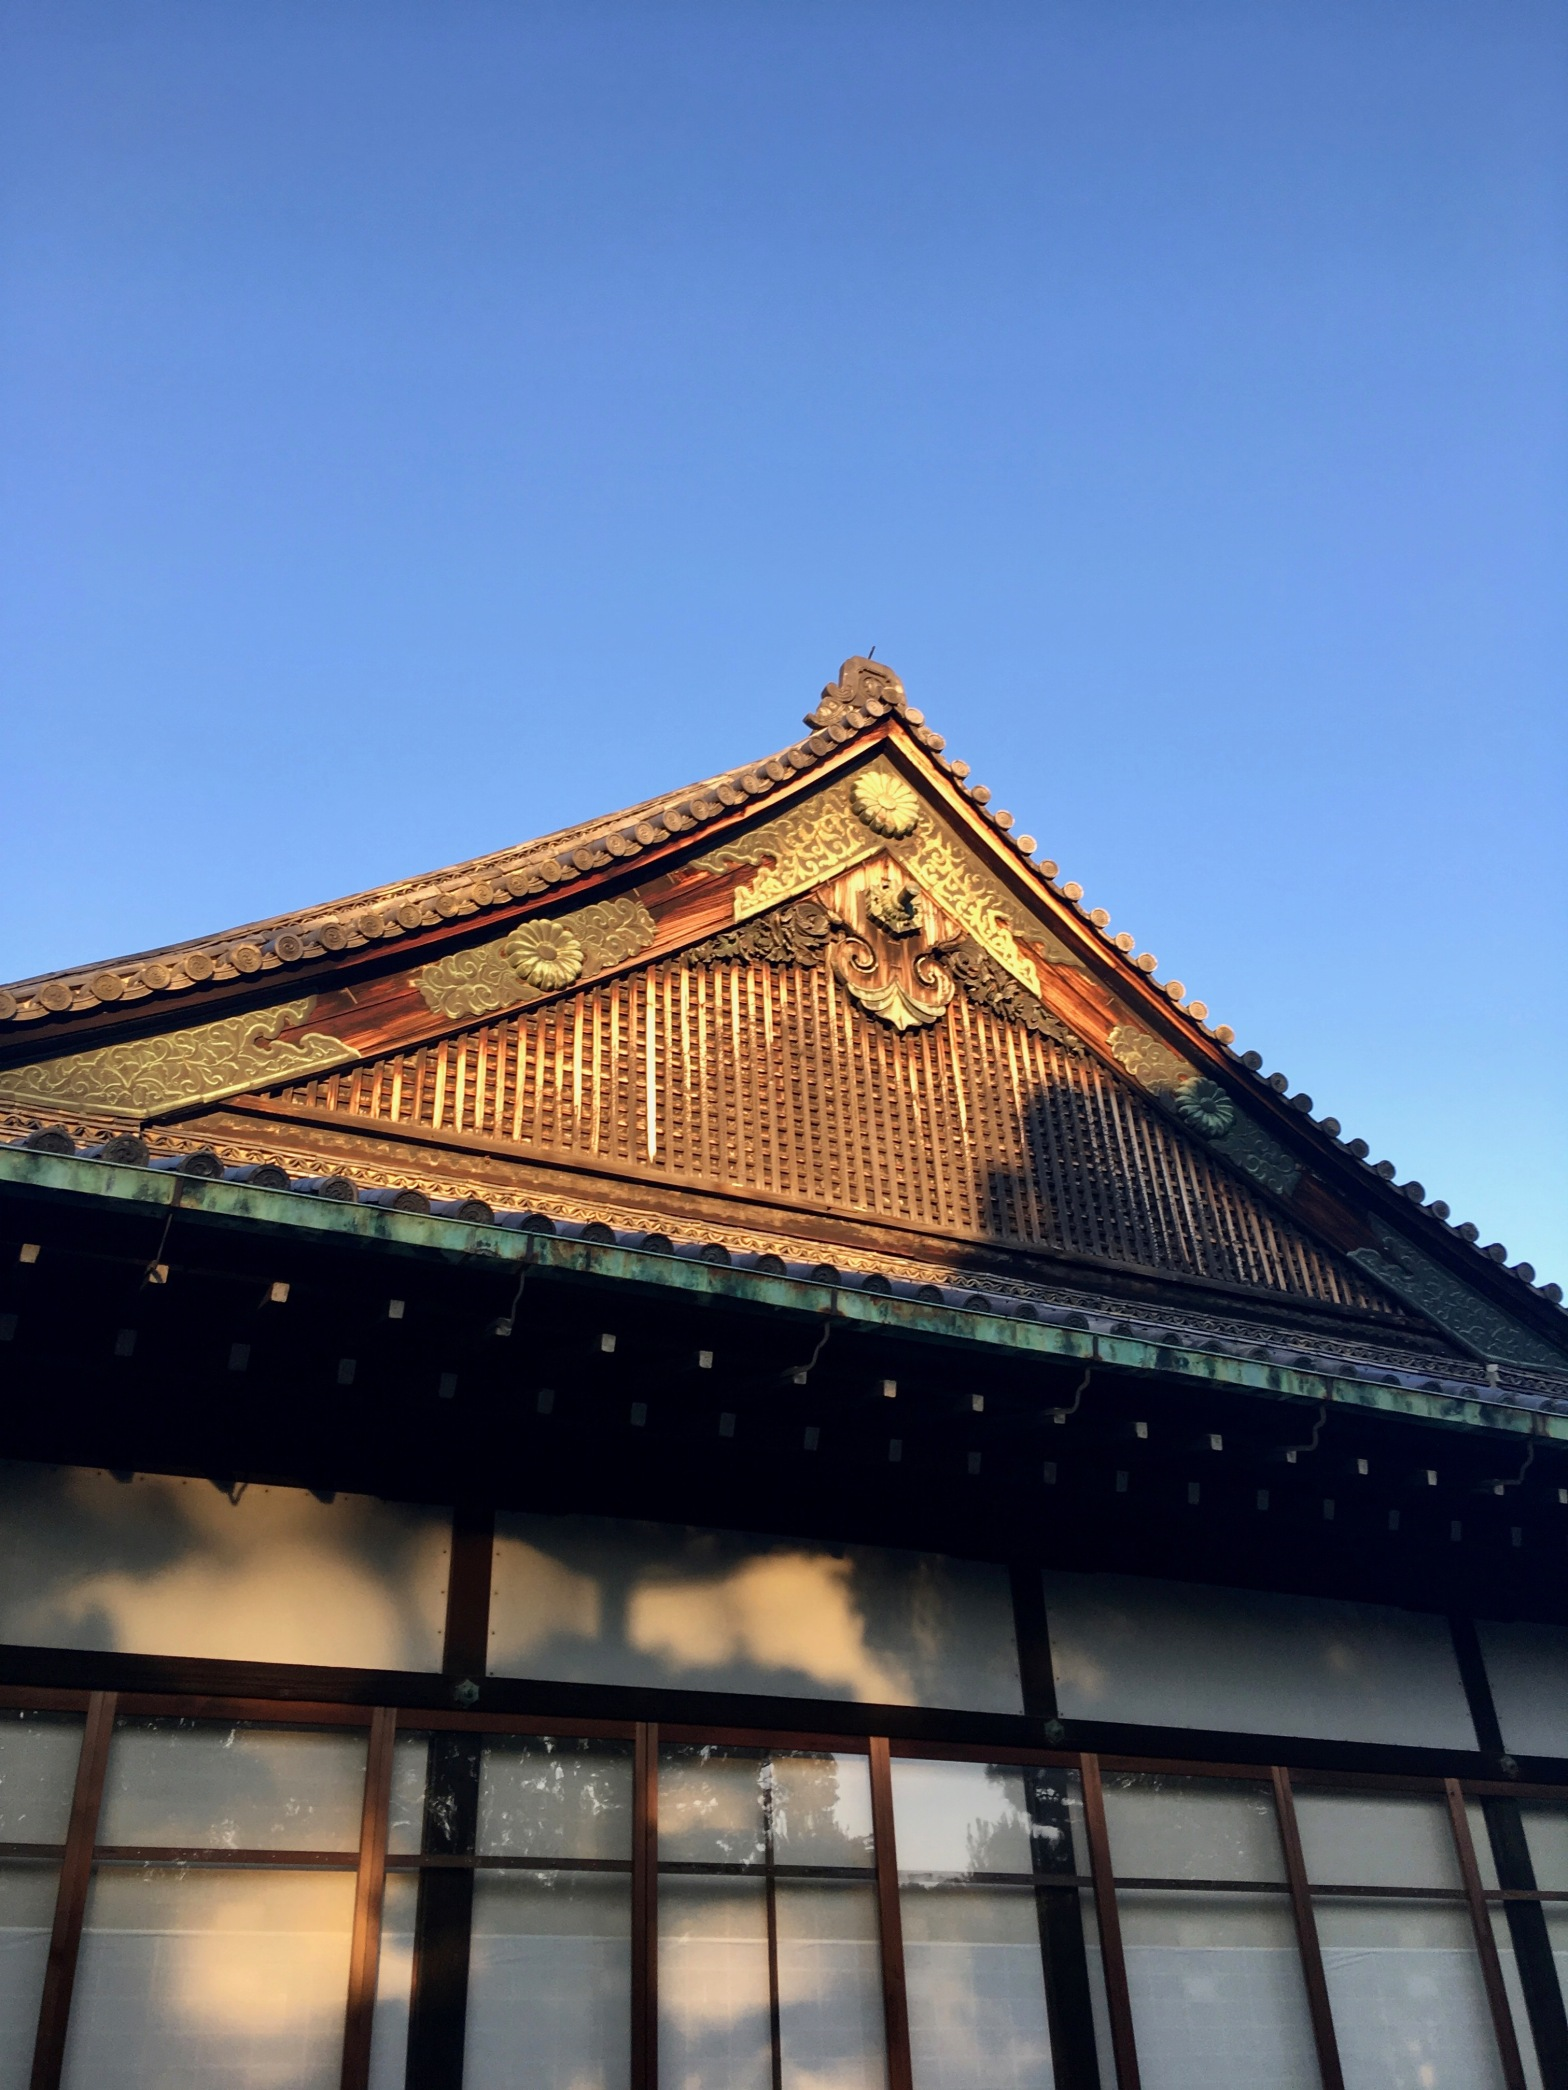 The roof of Ninomaru-goten Palace